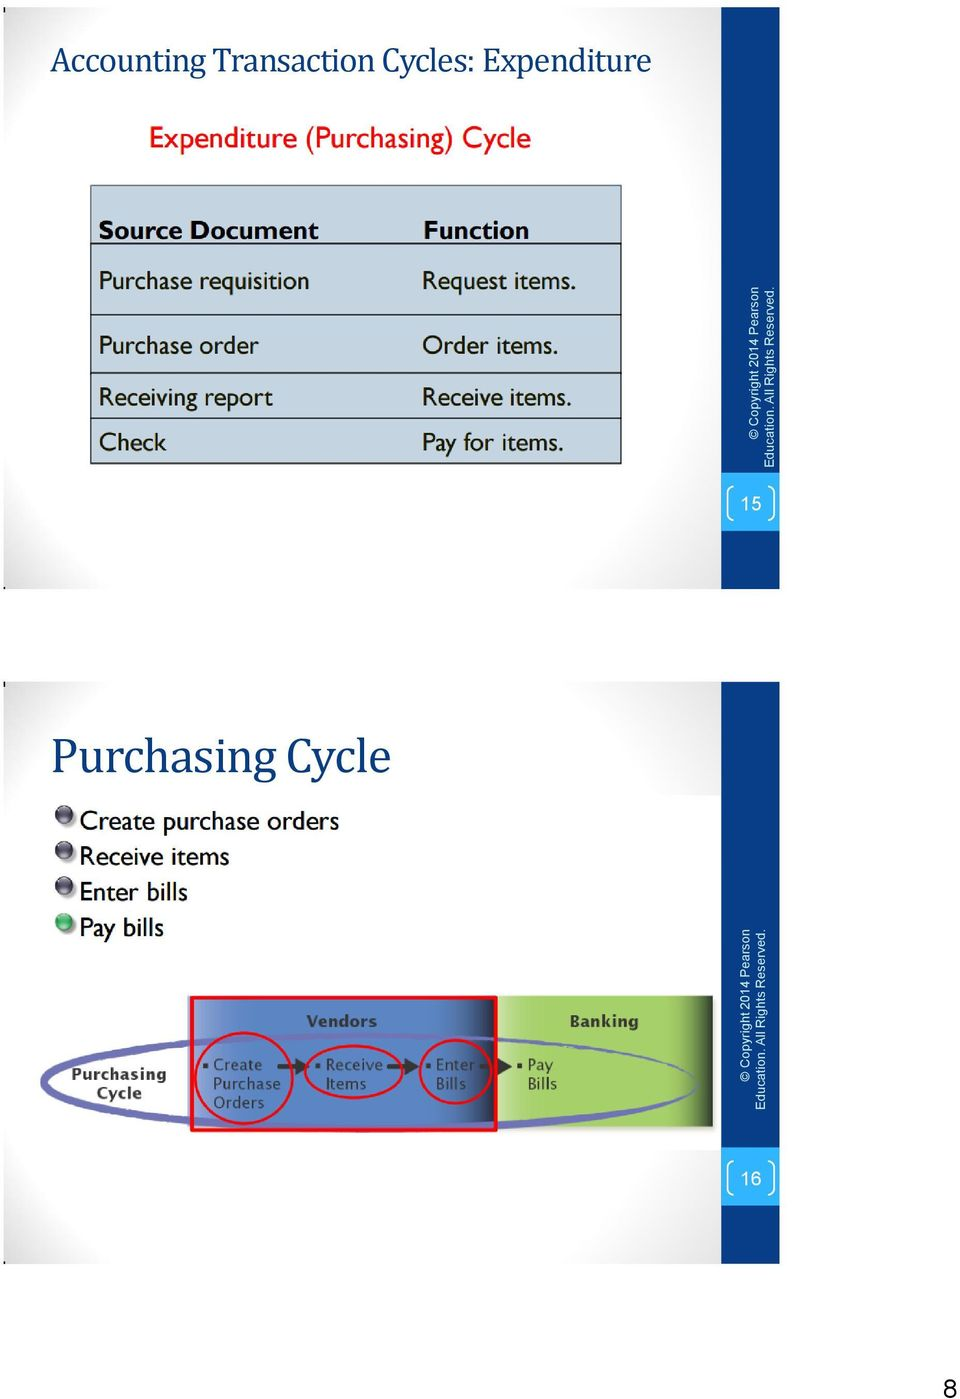 Accounting Transaction Cycles: Expenditure